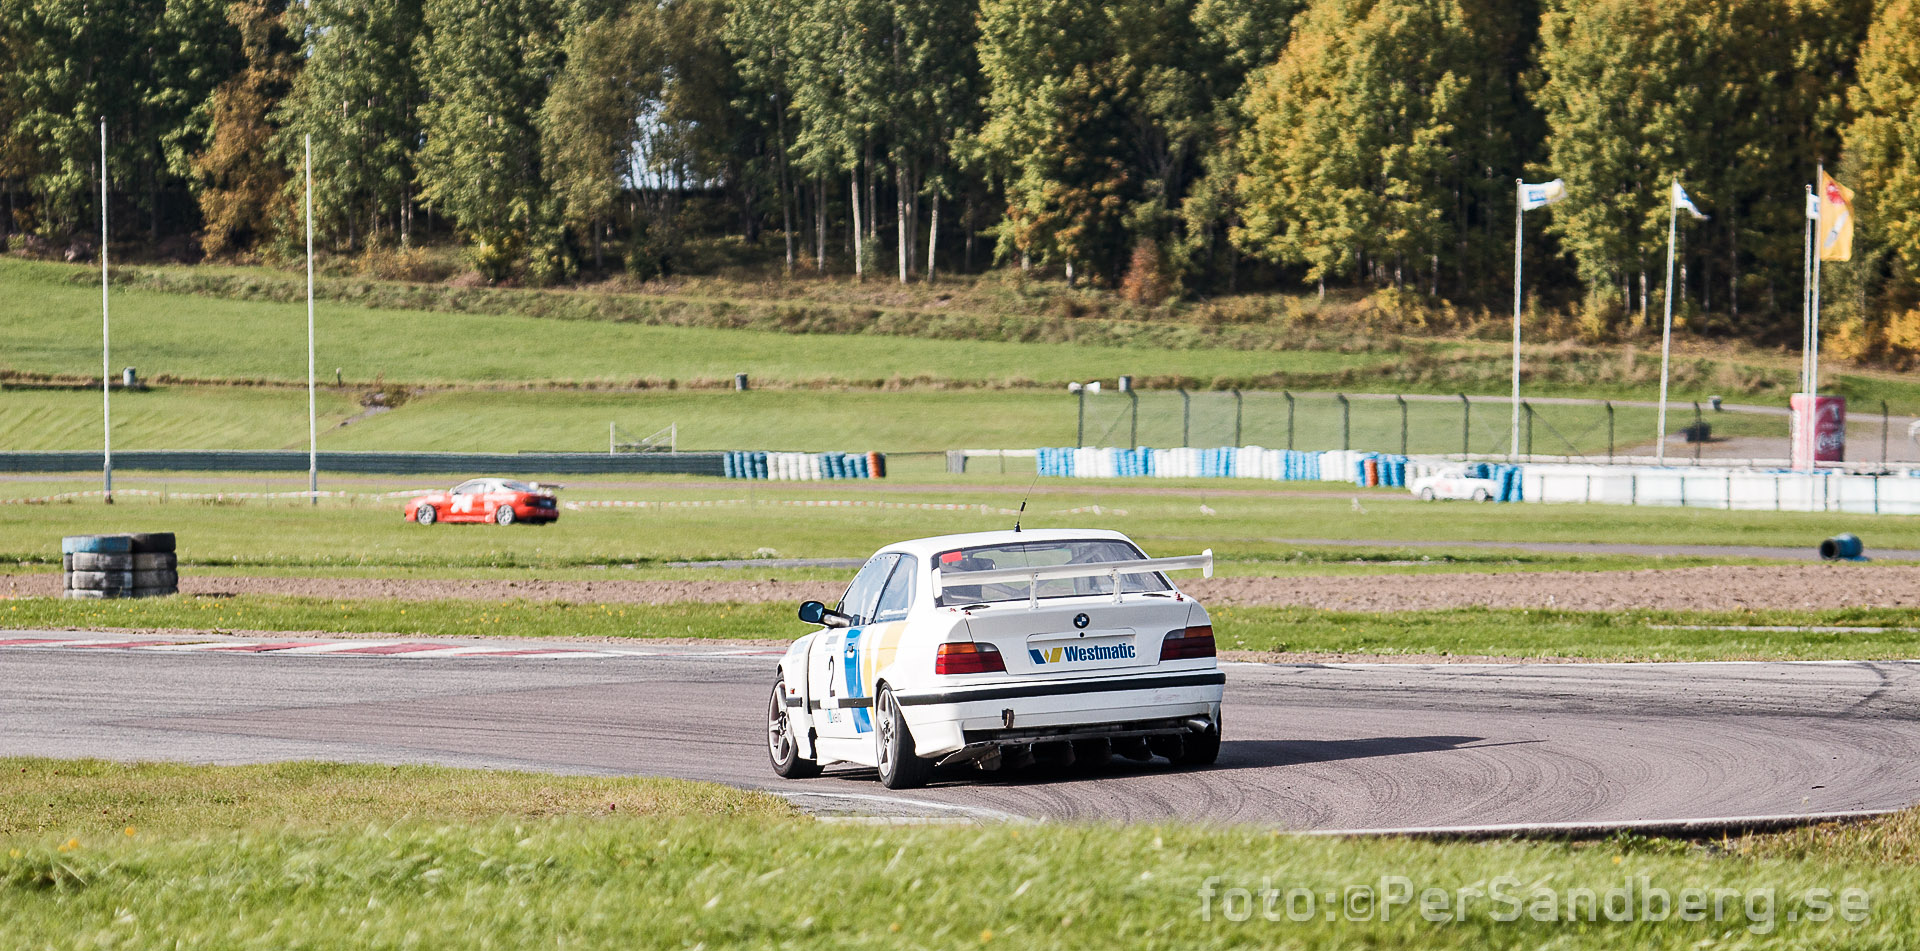 Westmatic Racing BMW M3 i Esset. NSHC final(race 6) Karskoga Motorstadion, foto: ©PerSandberg.se